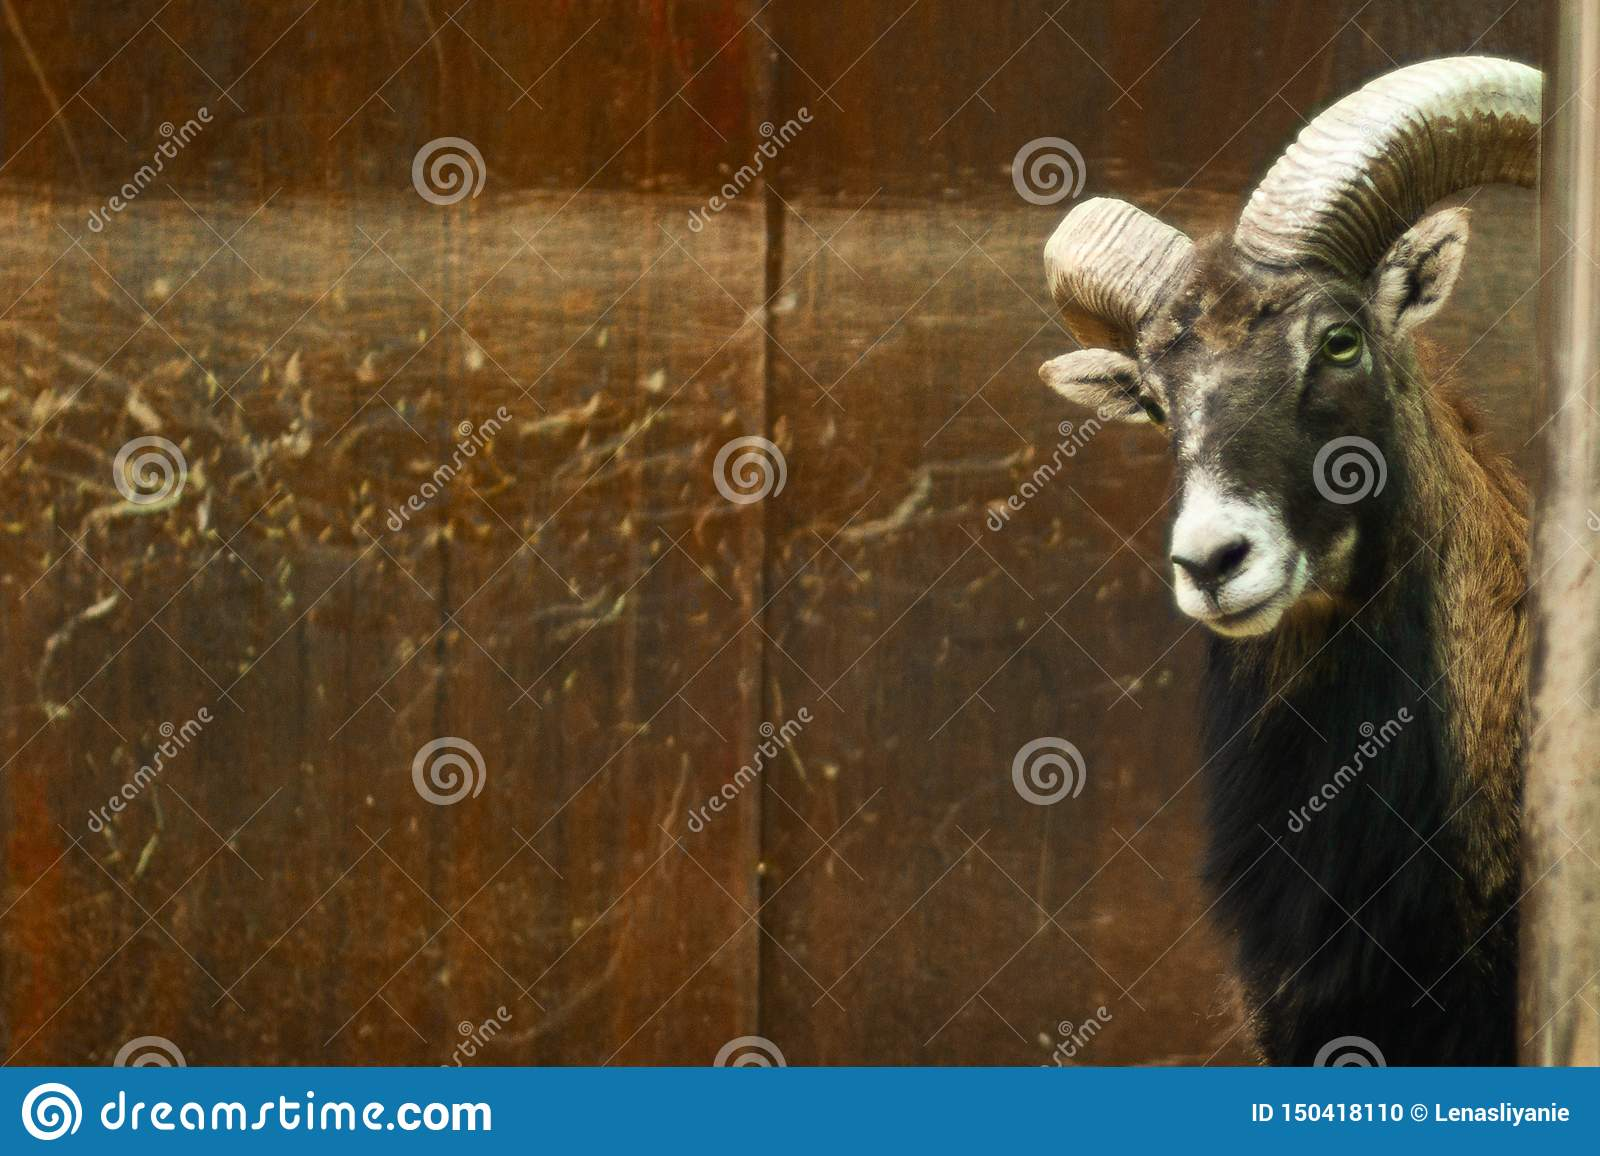 Funny portrait of curious black goat animal